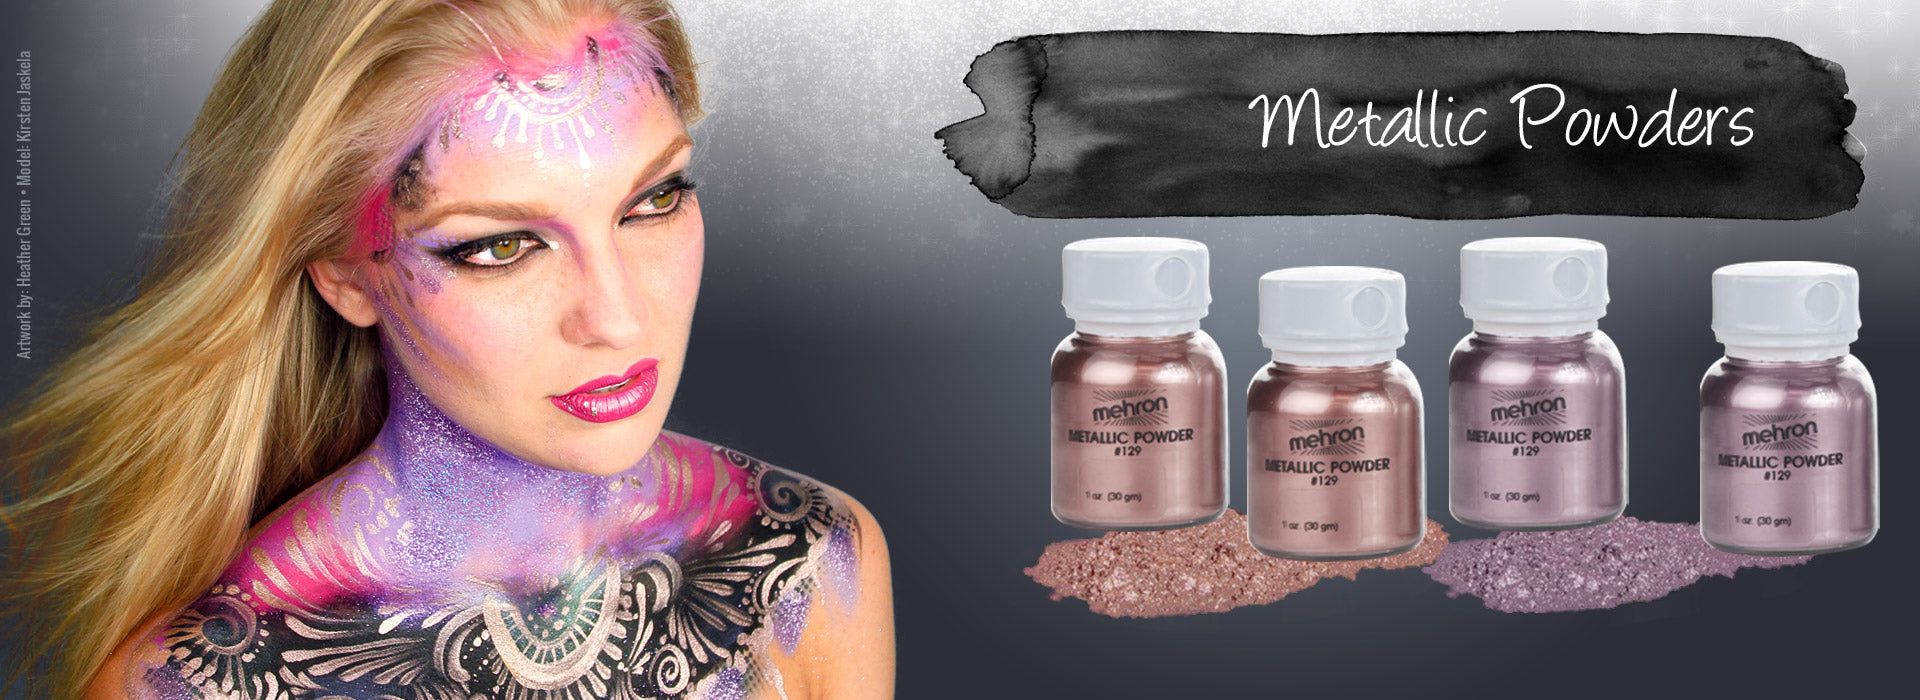 Mehron Metallic Powders